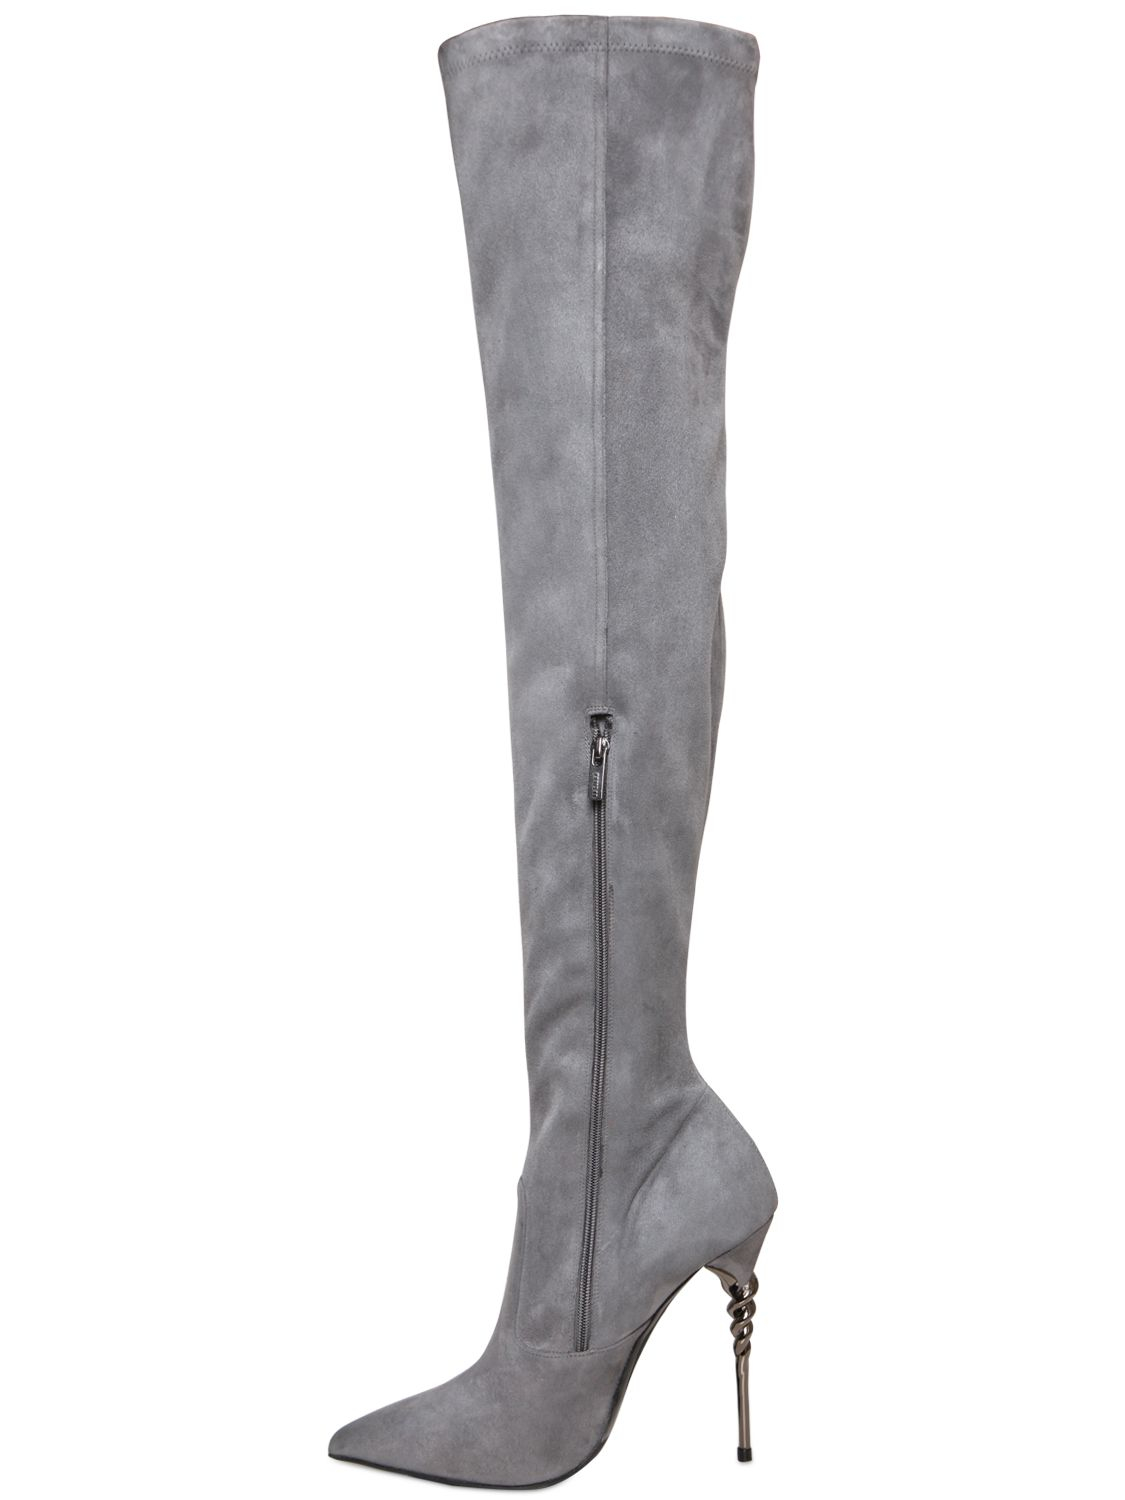 Le Silla Boots Lyst Le Silla 110mm Torchon Stretch Suede Boots In Gray